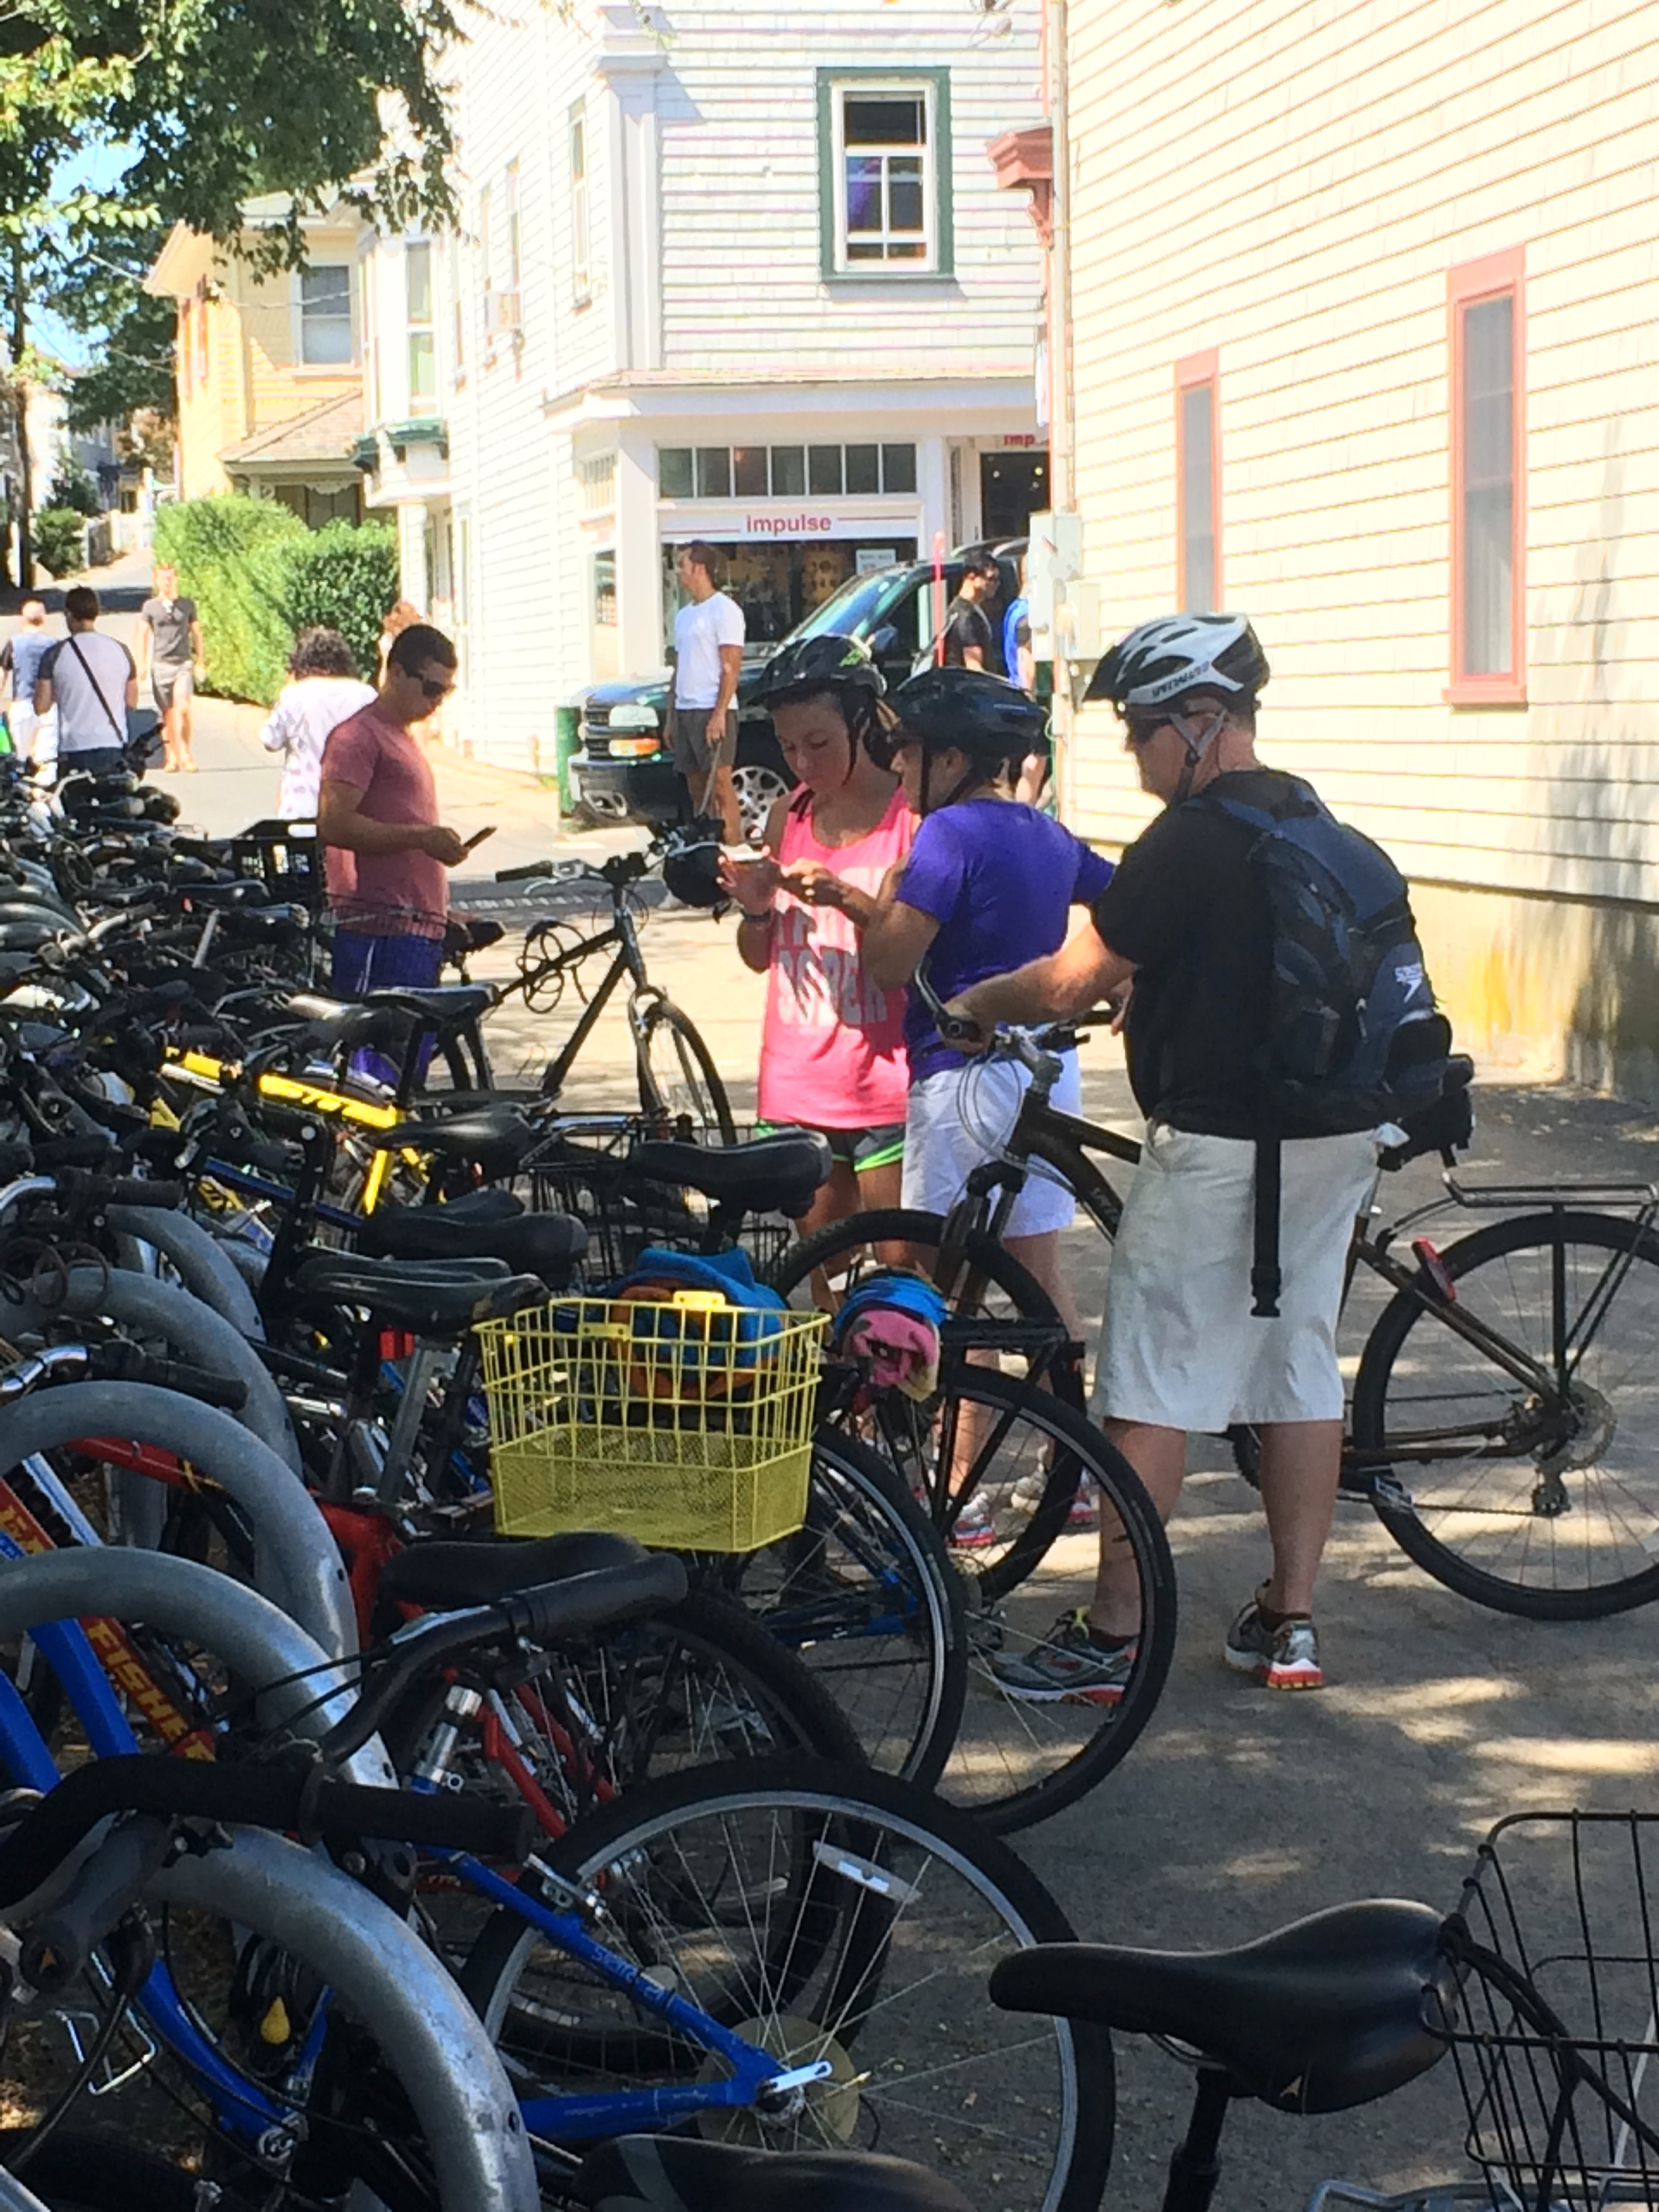 Bicycle parking at Court Street Landing in Provincetown.